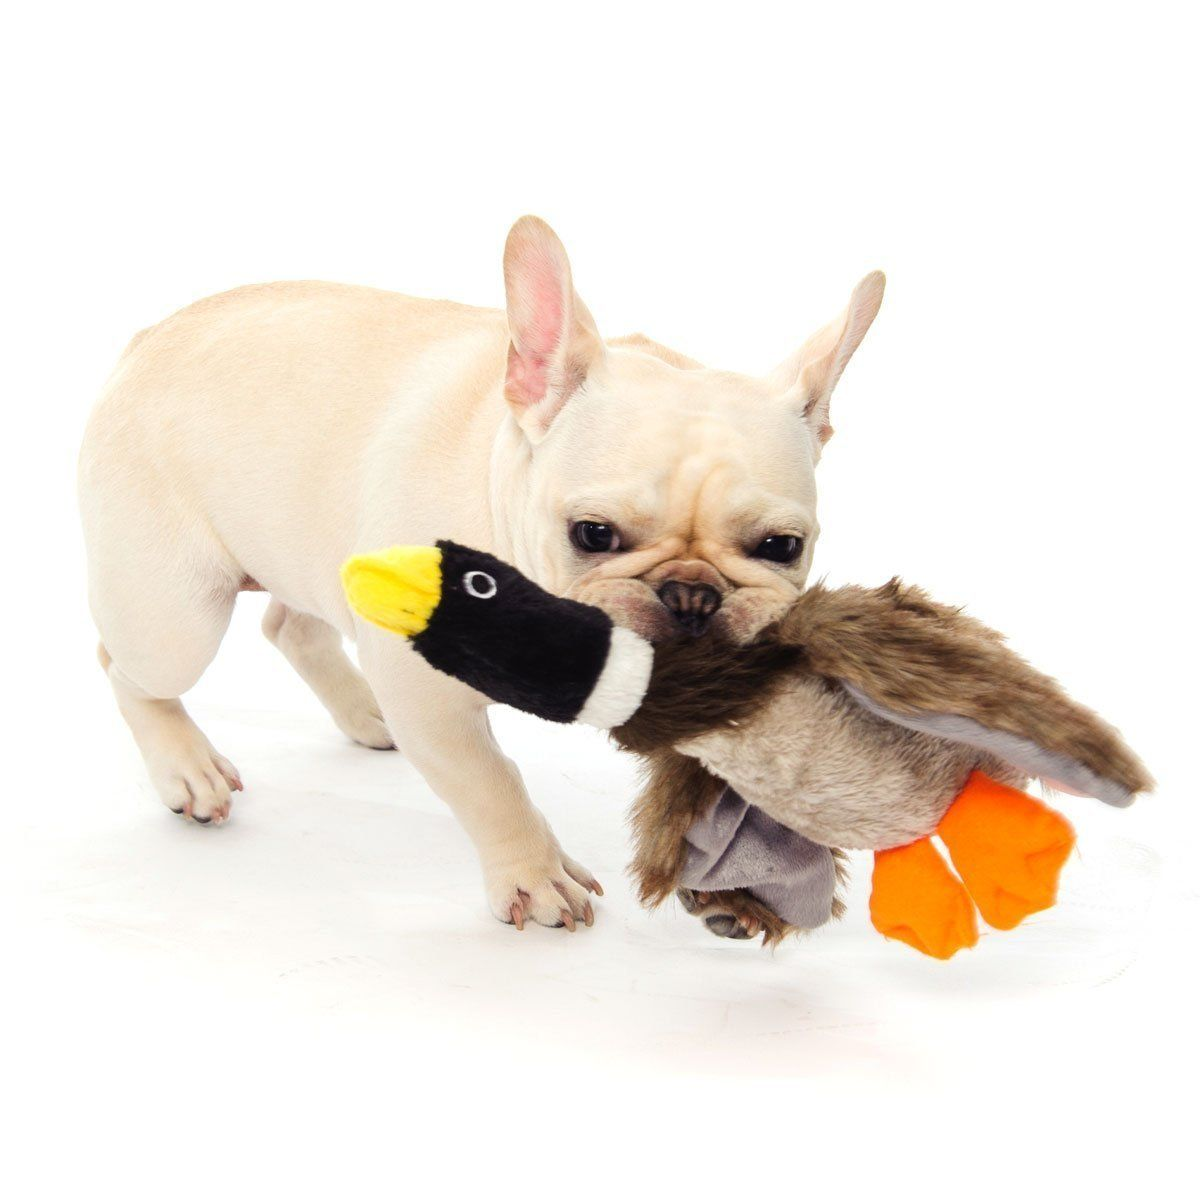 Dog toys images  Dogloveit Mallard Duck Squeaky Dog Toys for Small Dogs Plush Dog